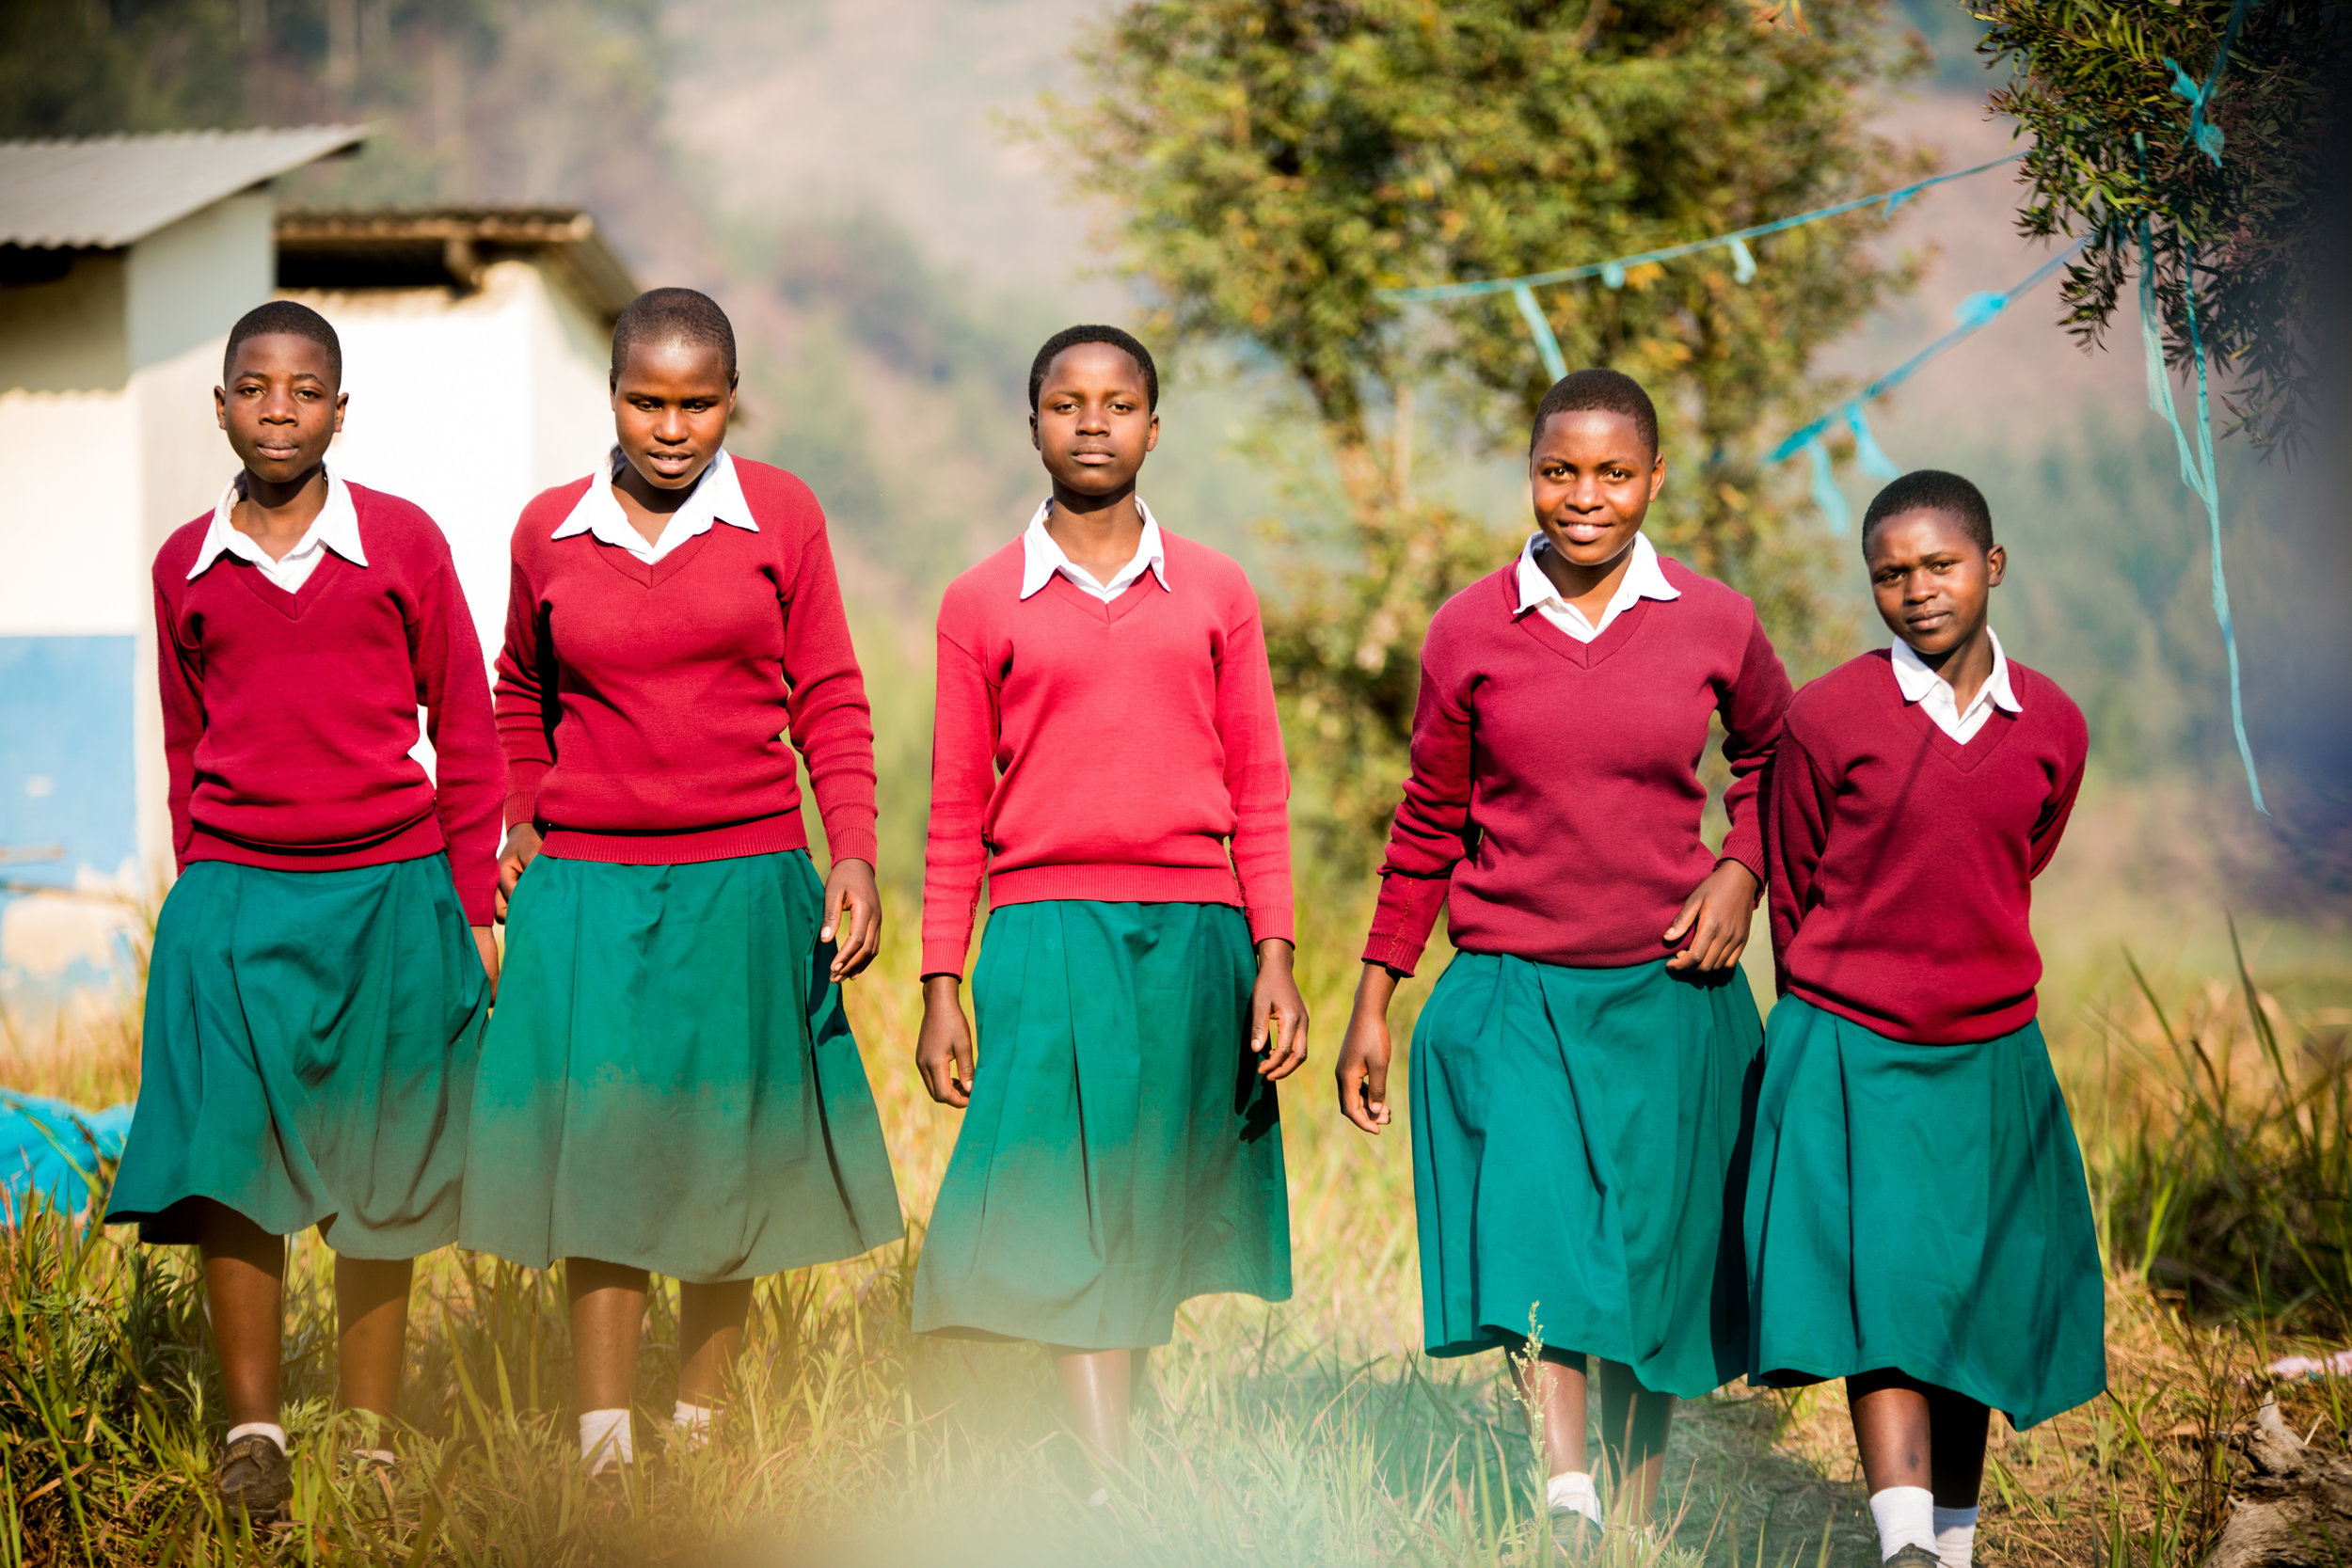 1,000 girls safe in dormitories built by Lyra with local communities since 2011 – Lyra's goal is to reach 5,000 girls.